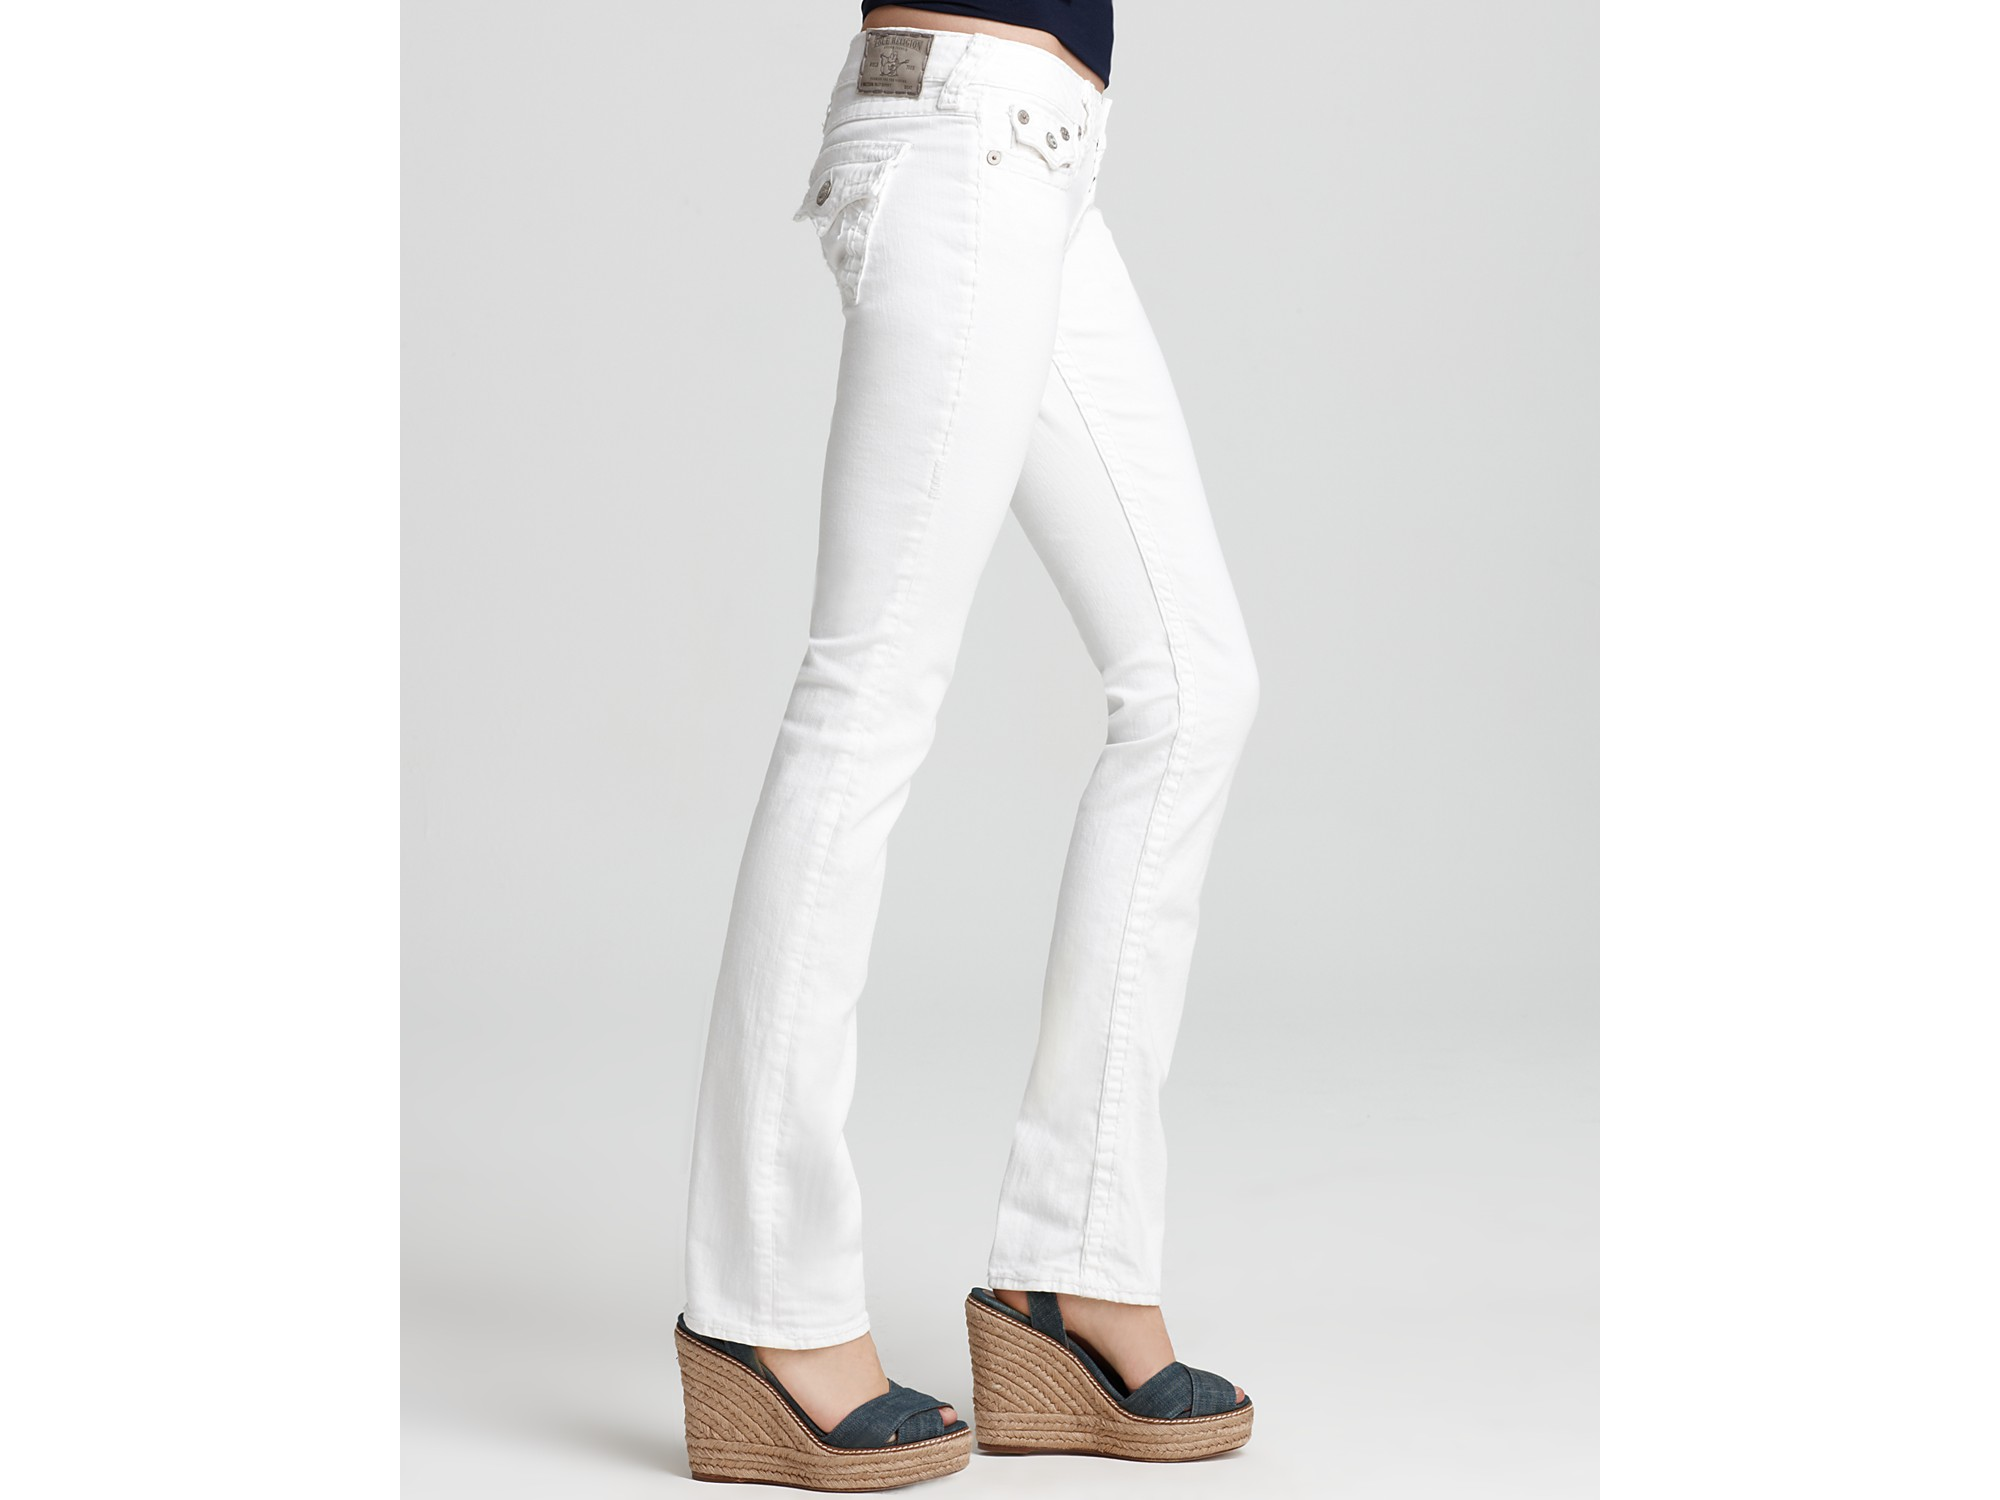 True religion Jeans Billy Super T Straight Leg Jeans in White in ...